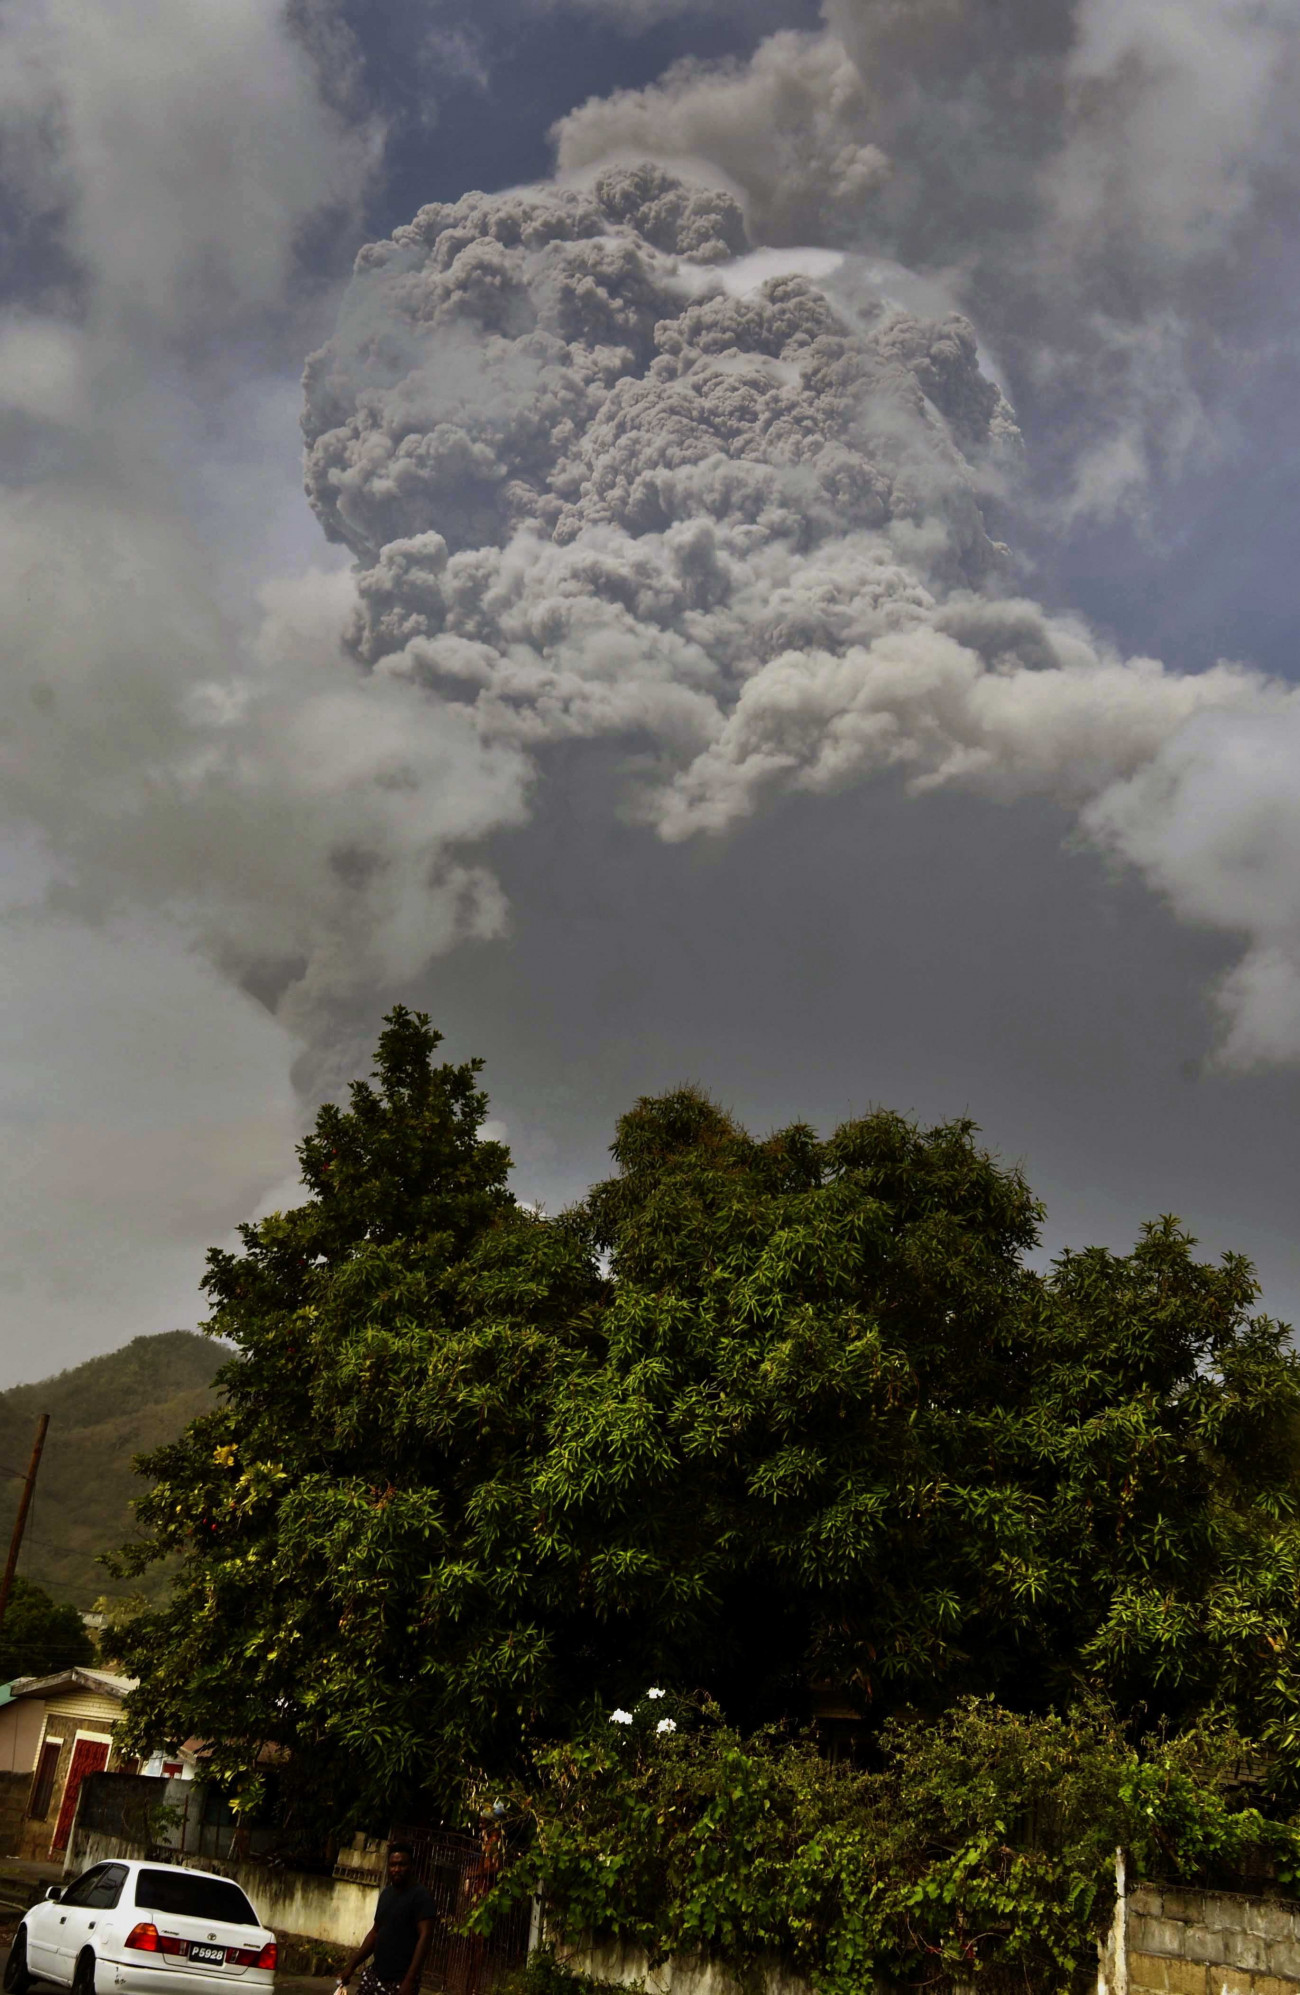 Kingstown, April 10, 2021, an ash cloud was ejected by La Soufriere volcano on Saint Vincent Island in the Caribbean on April 9, 2021. MTI / AP / Orvil Samuel